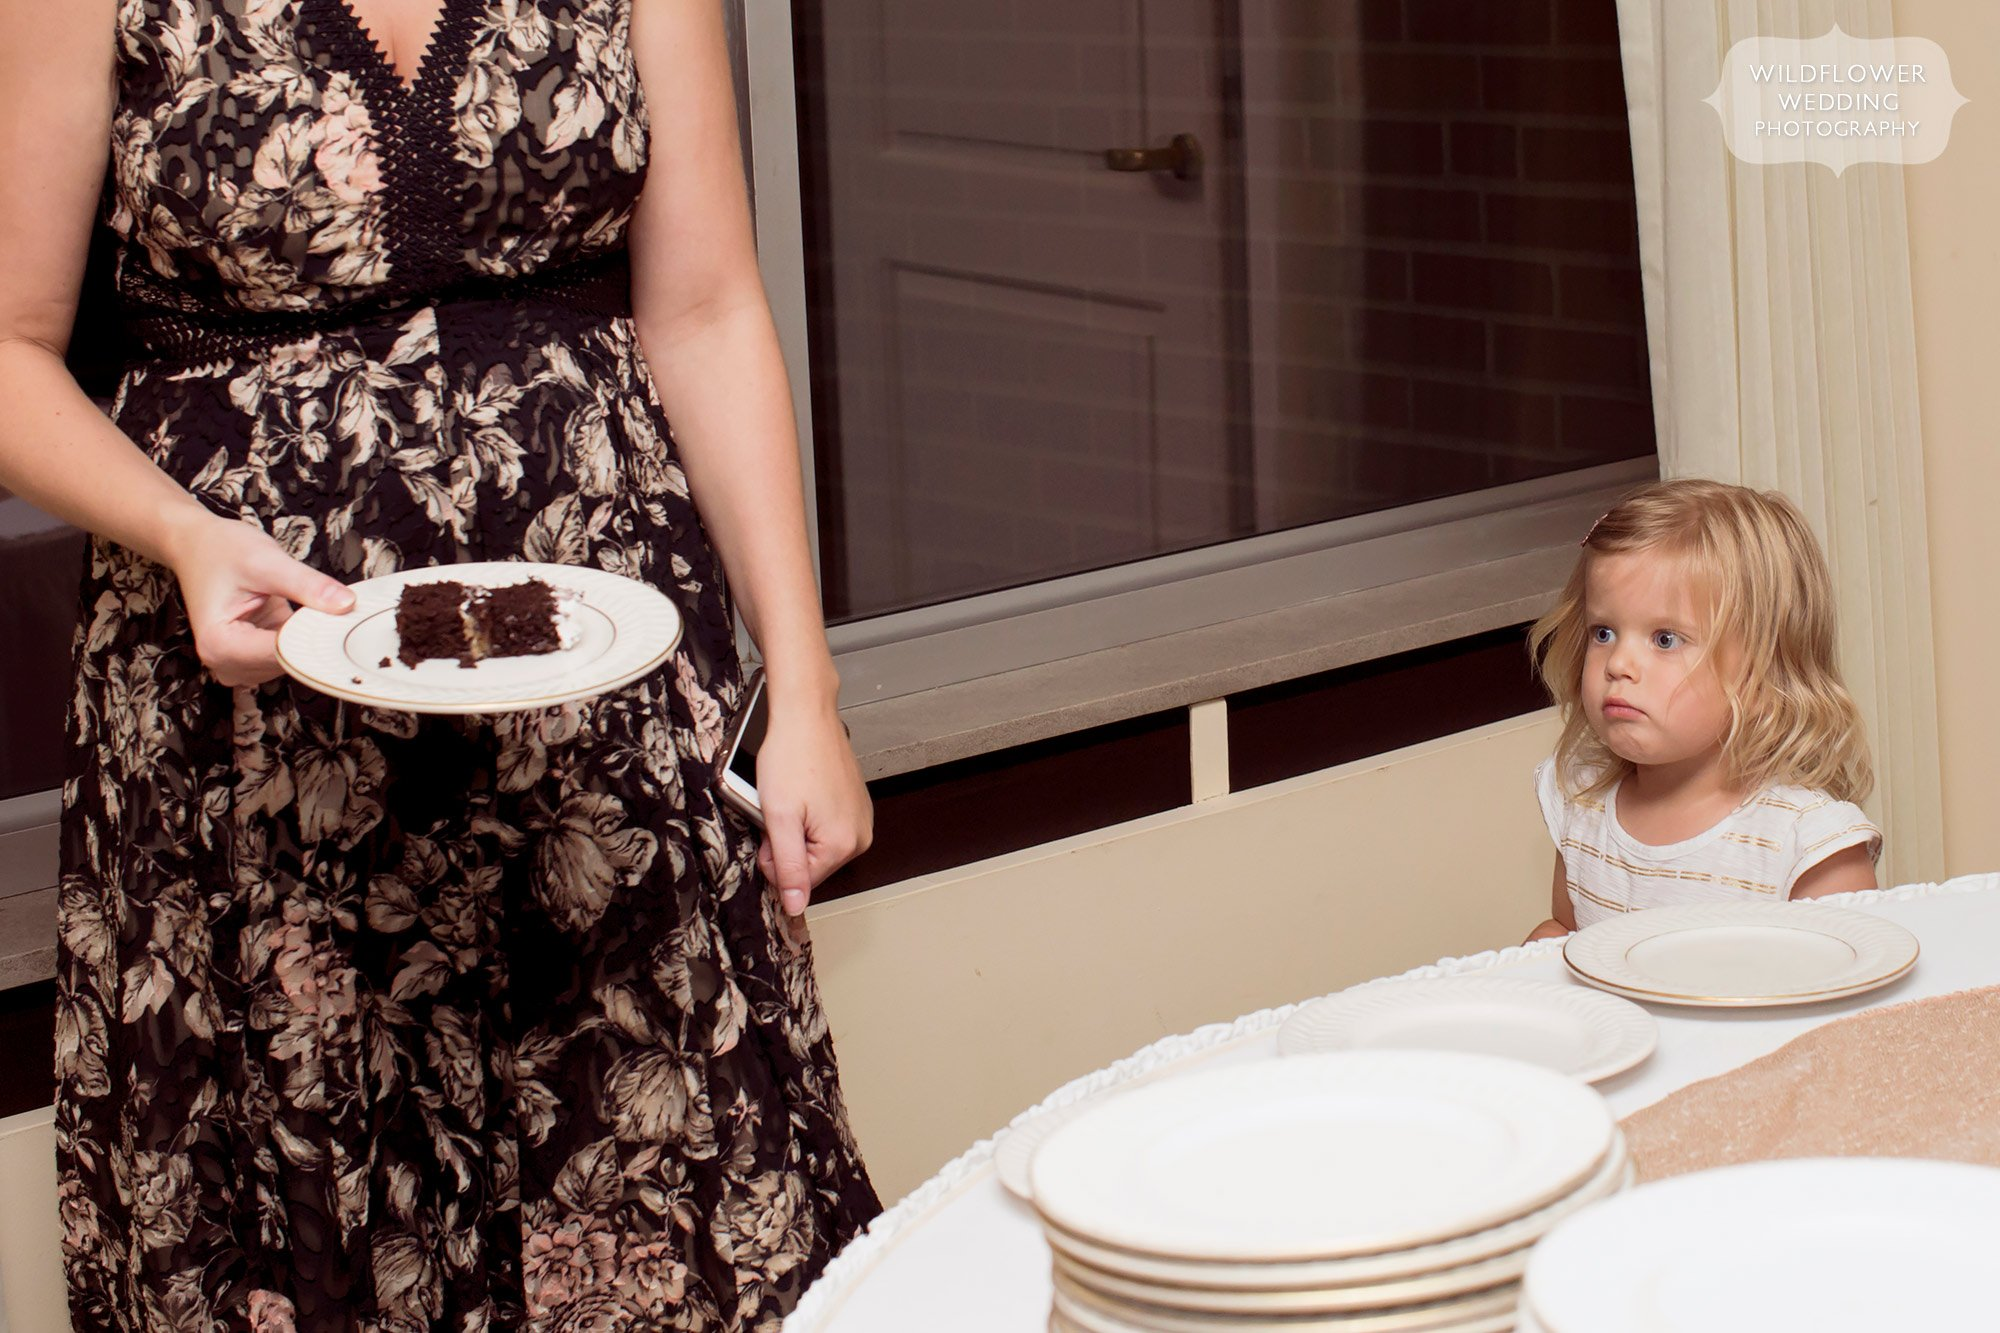 Funny documentary wedding photo of the flower girl looking at cake.